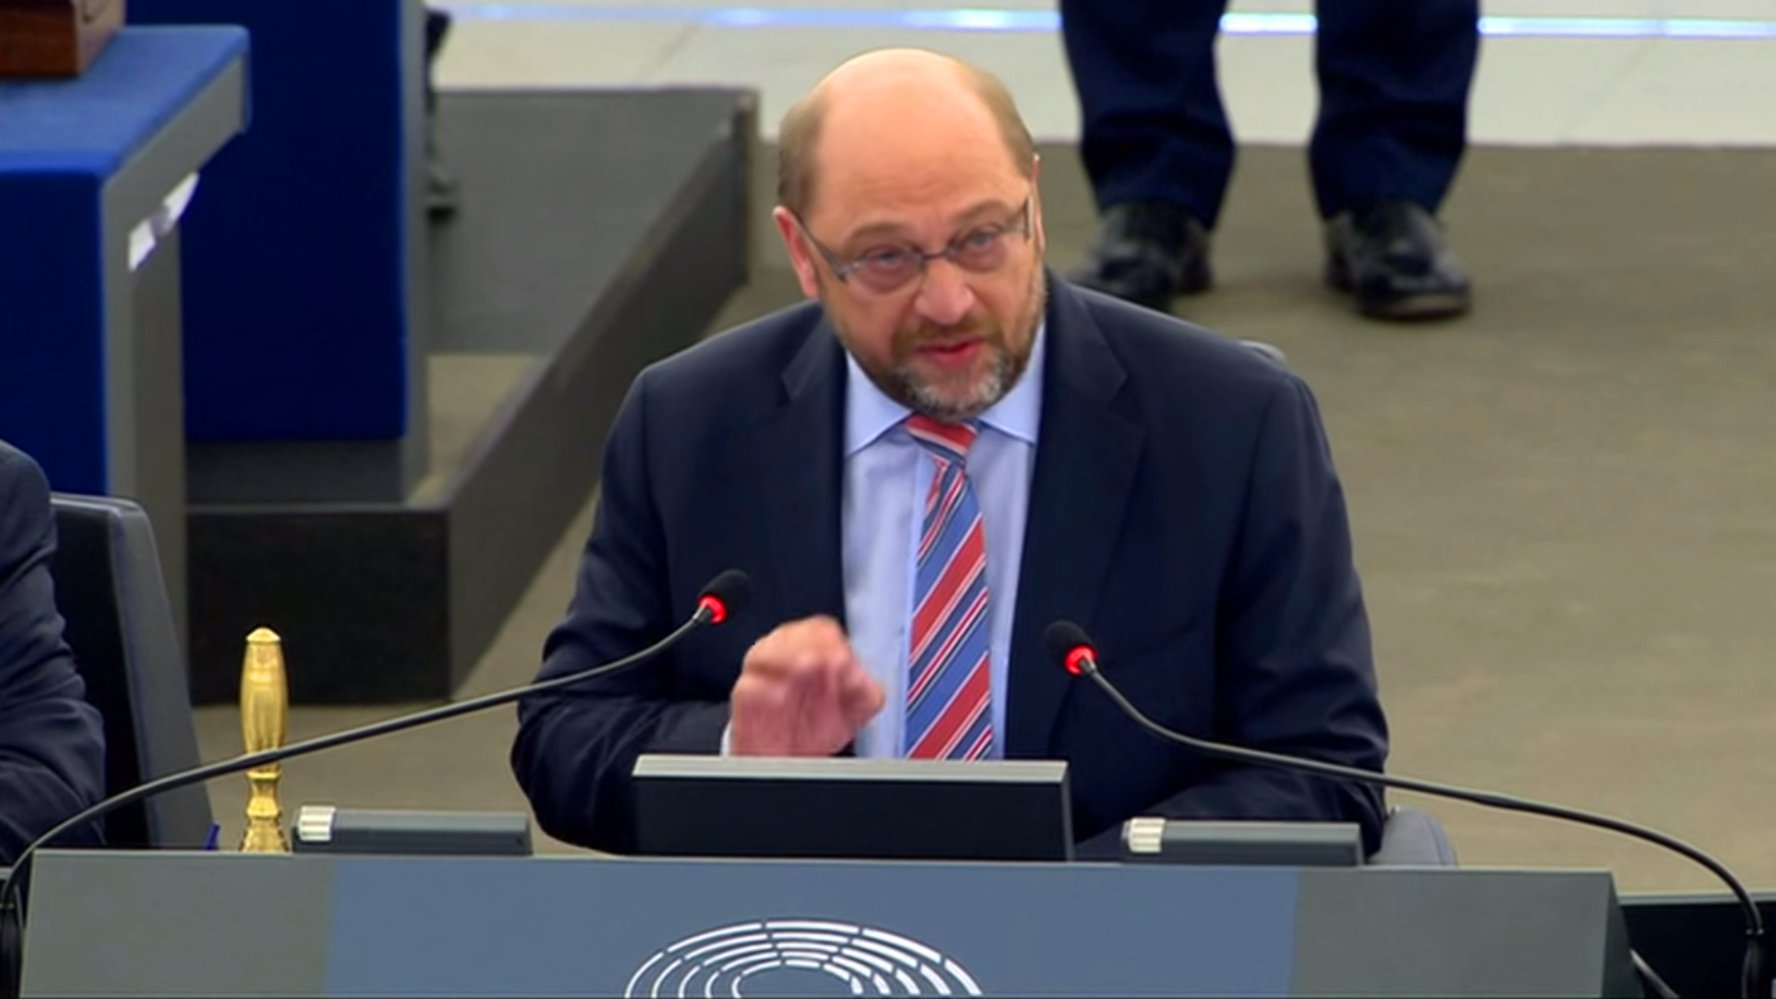 Martin Schulz im Europaparlament, 2016 (Video)